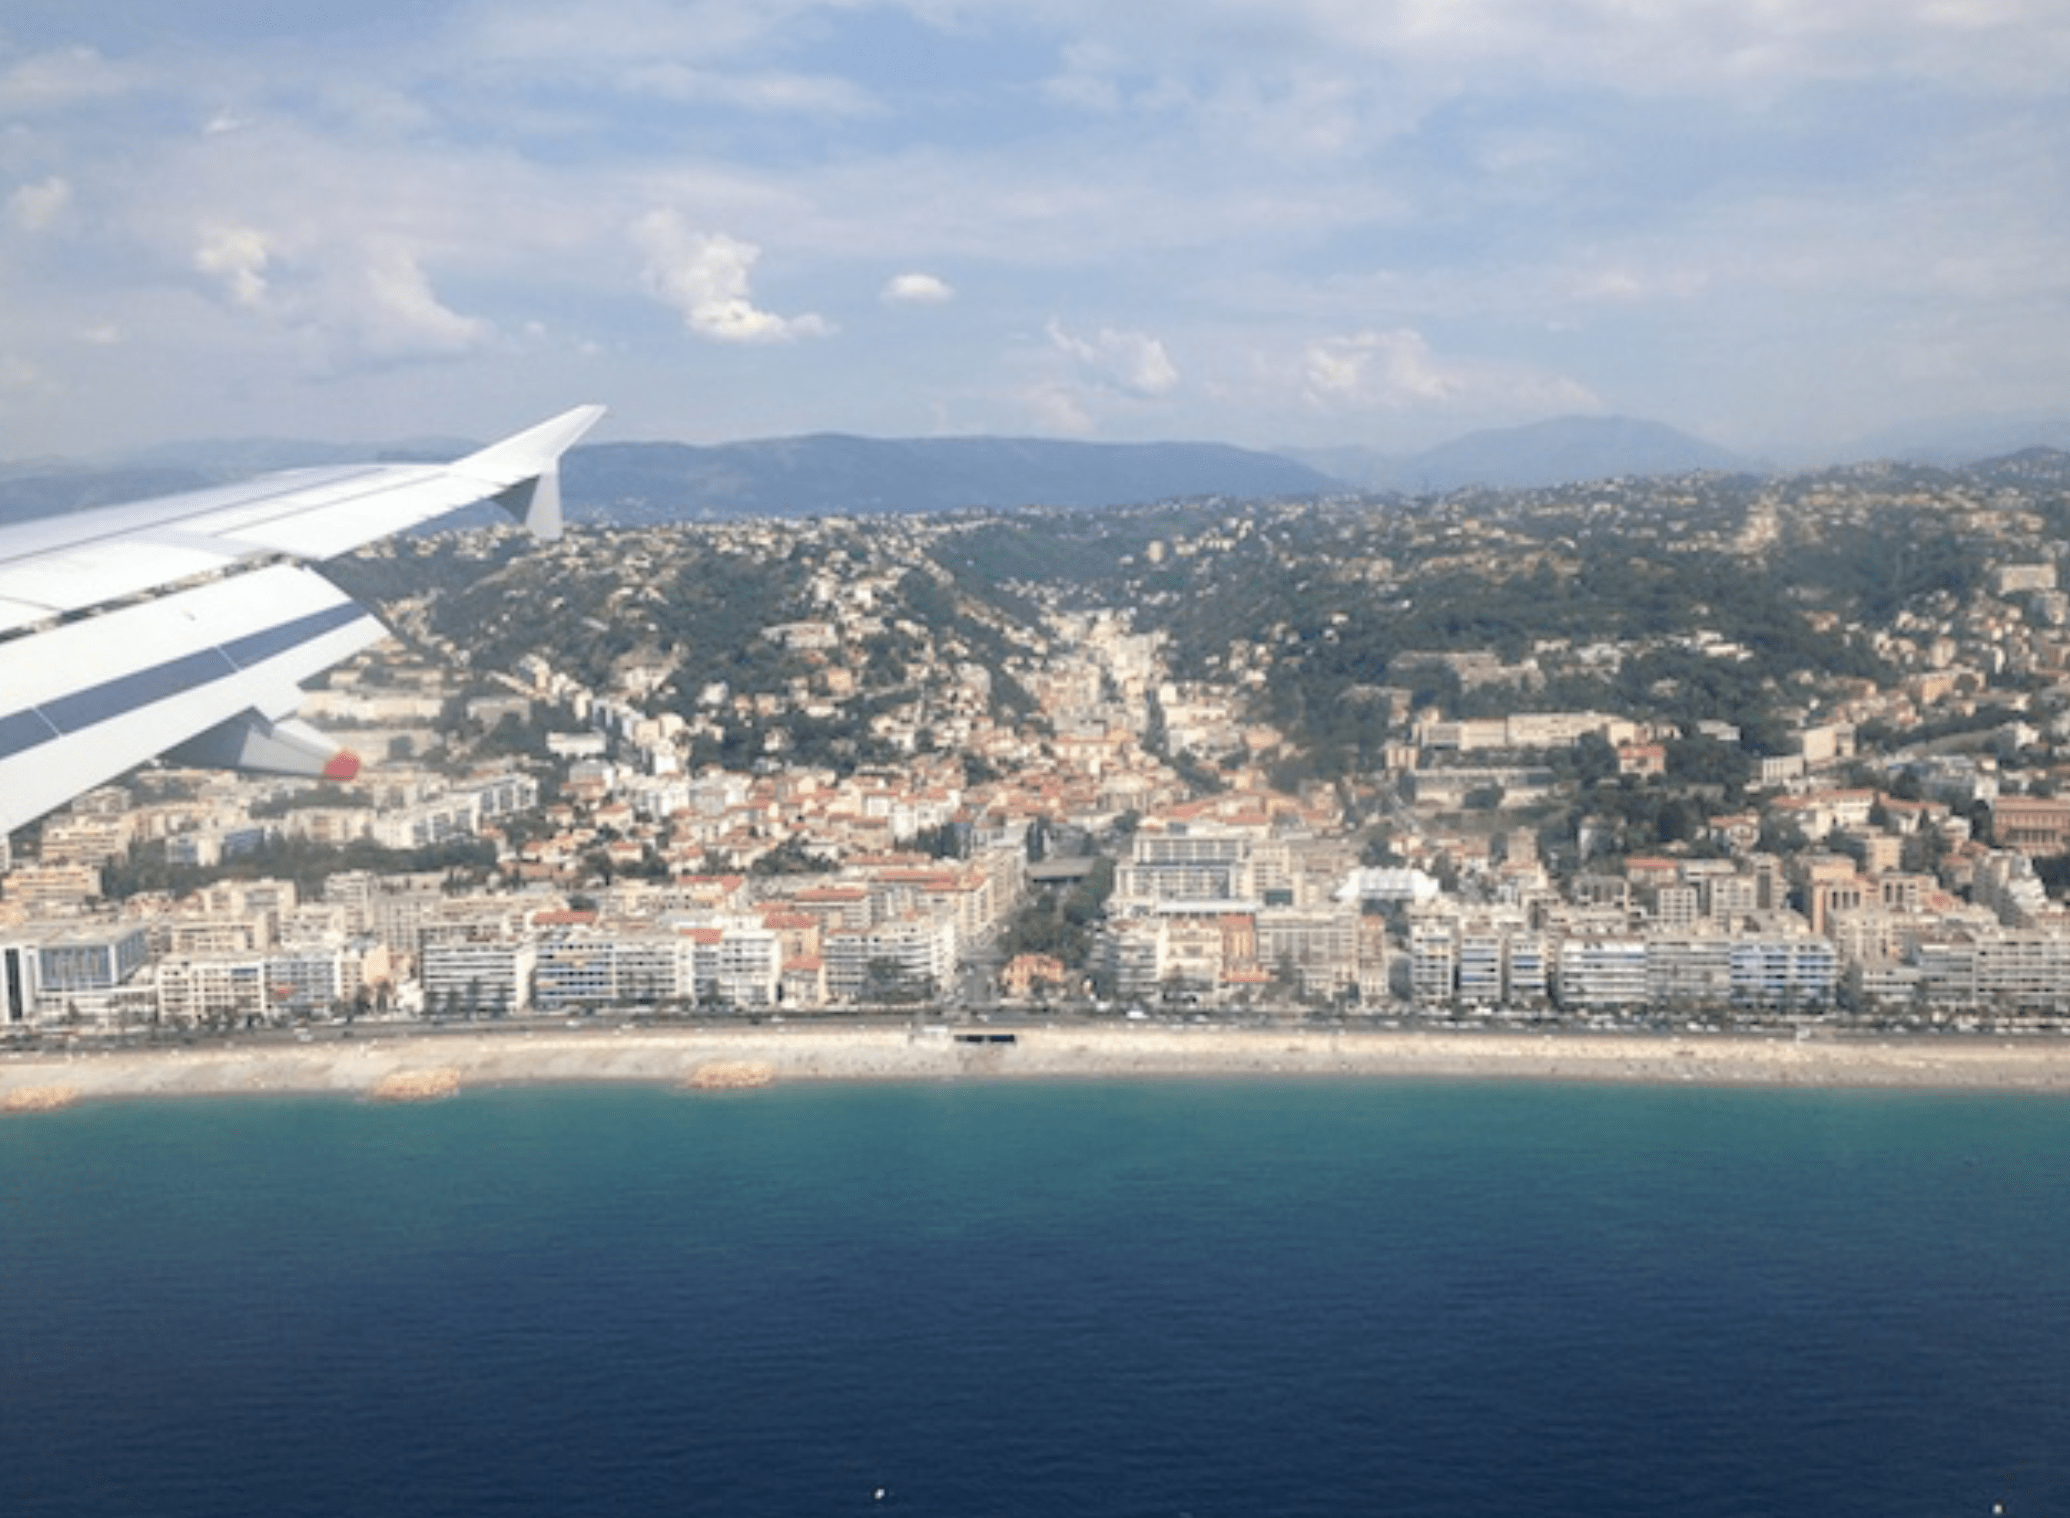 Flying over Nice